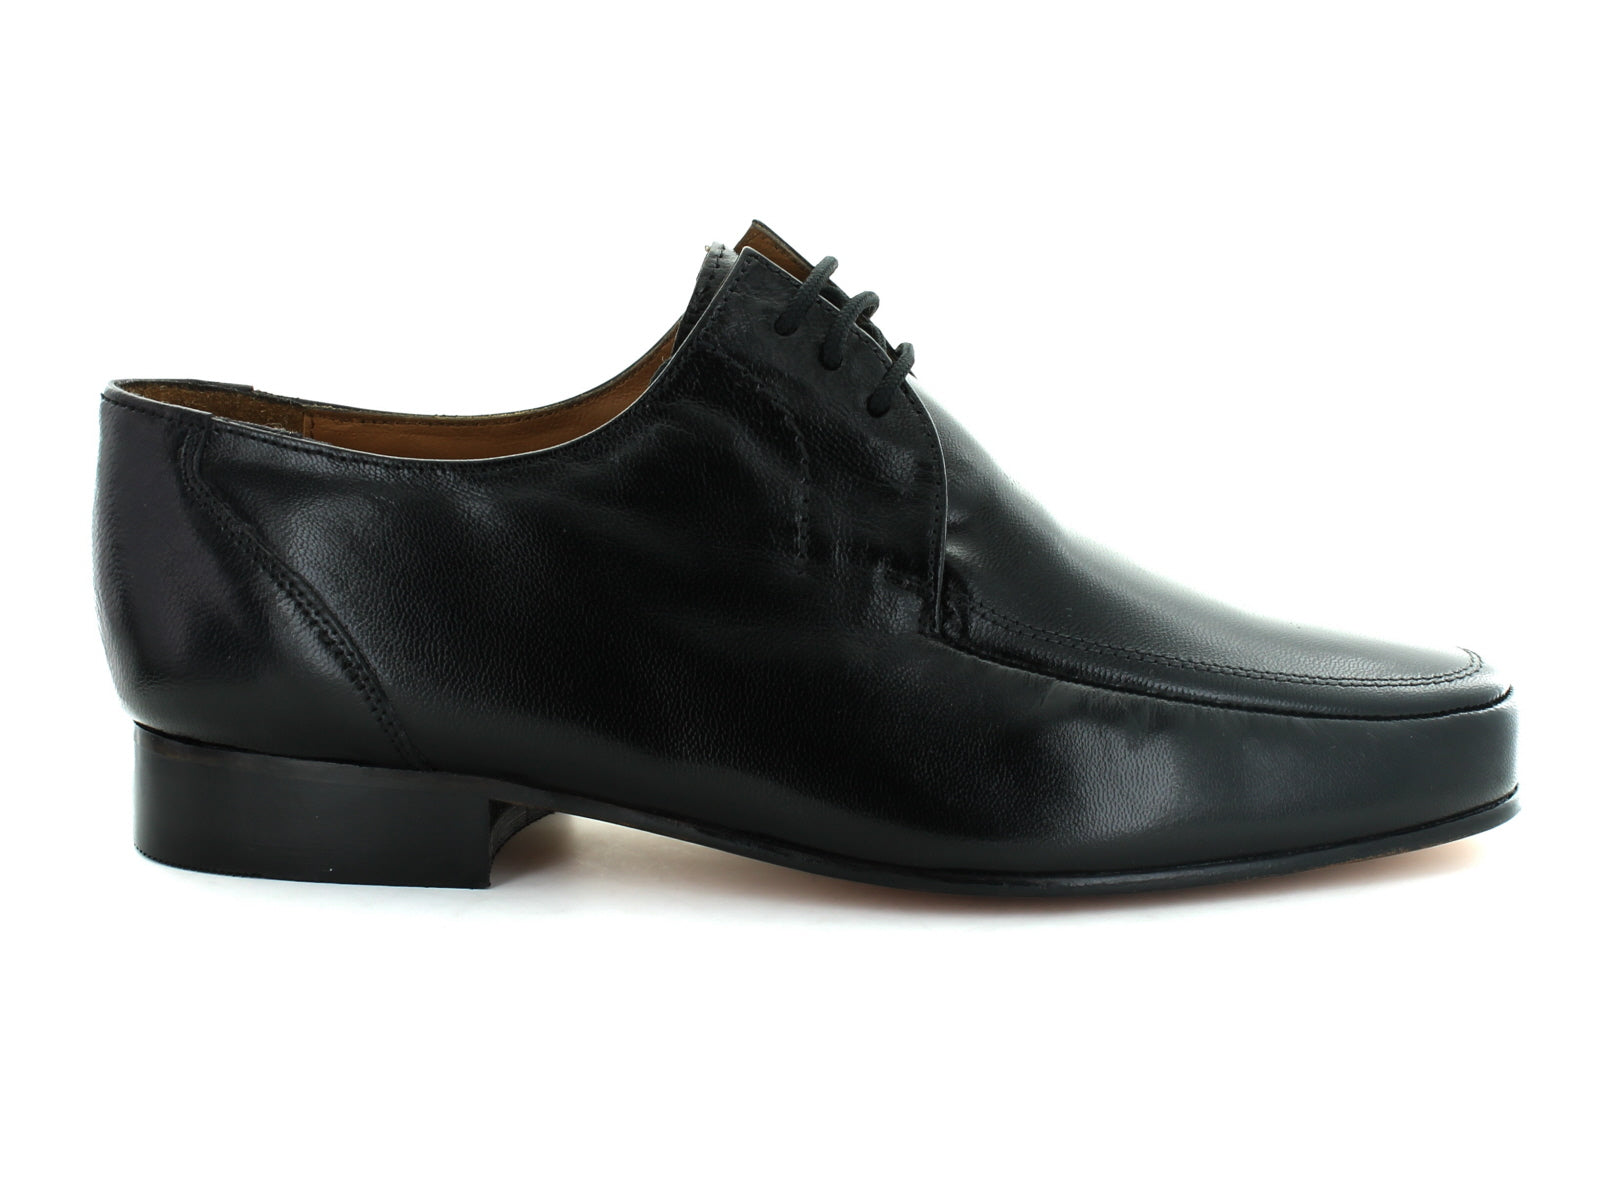 Rombah Wallace Romsey 8309 in Black Leather outer view